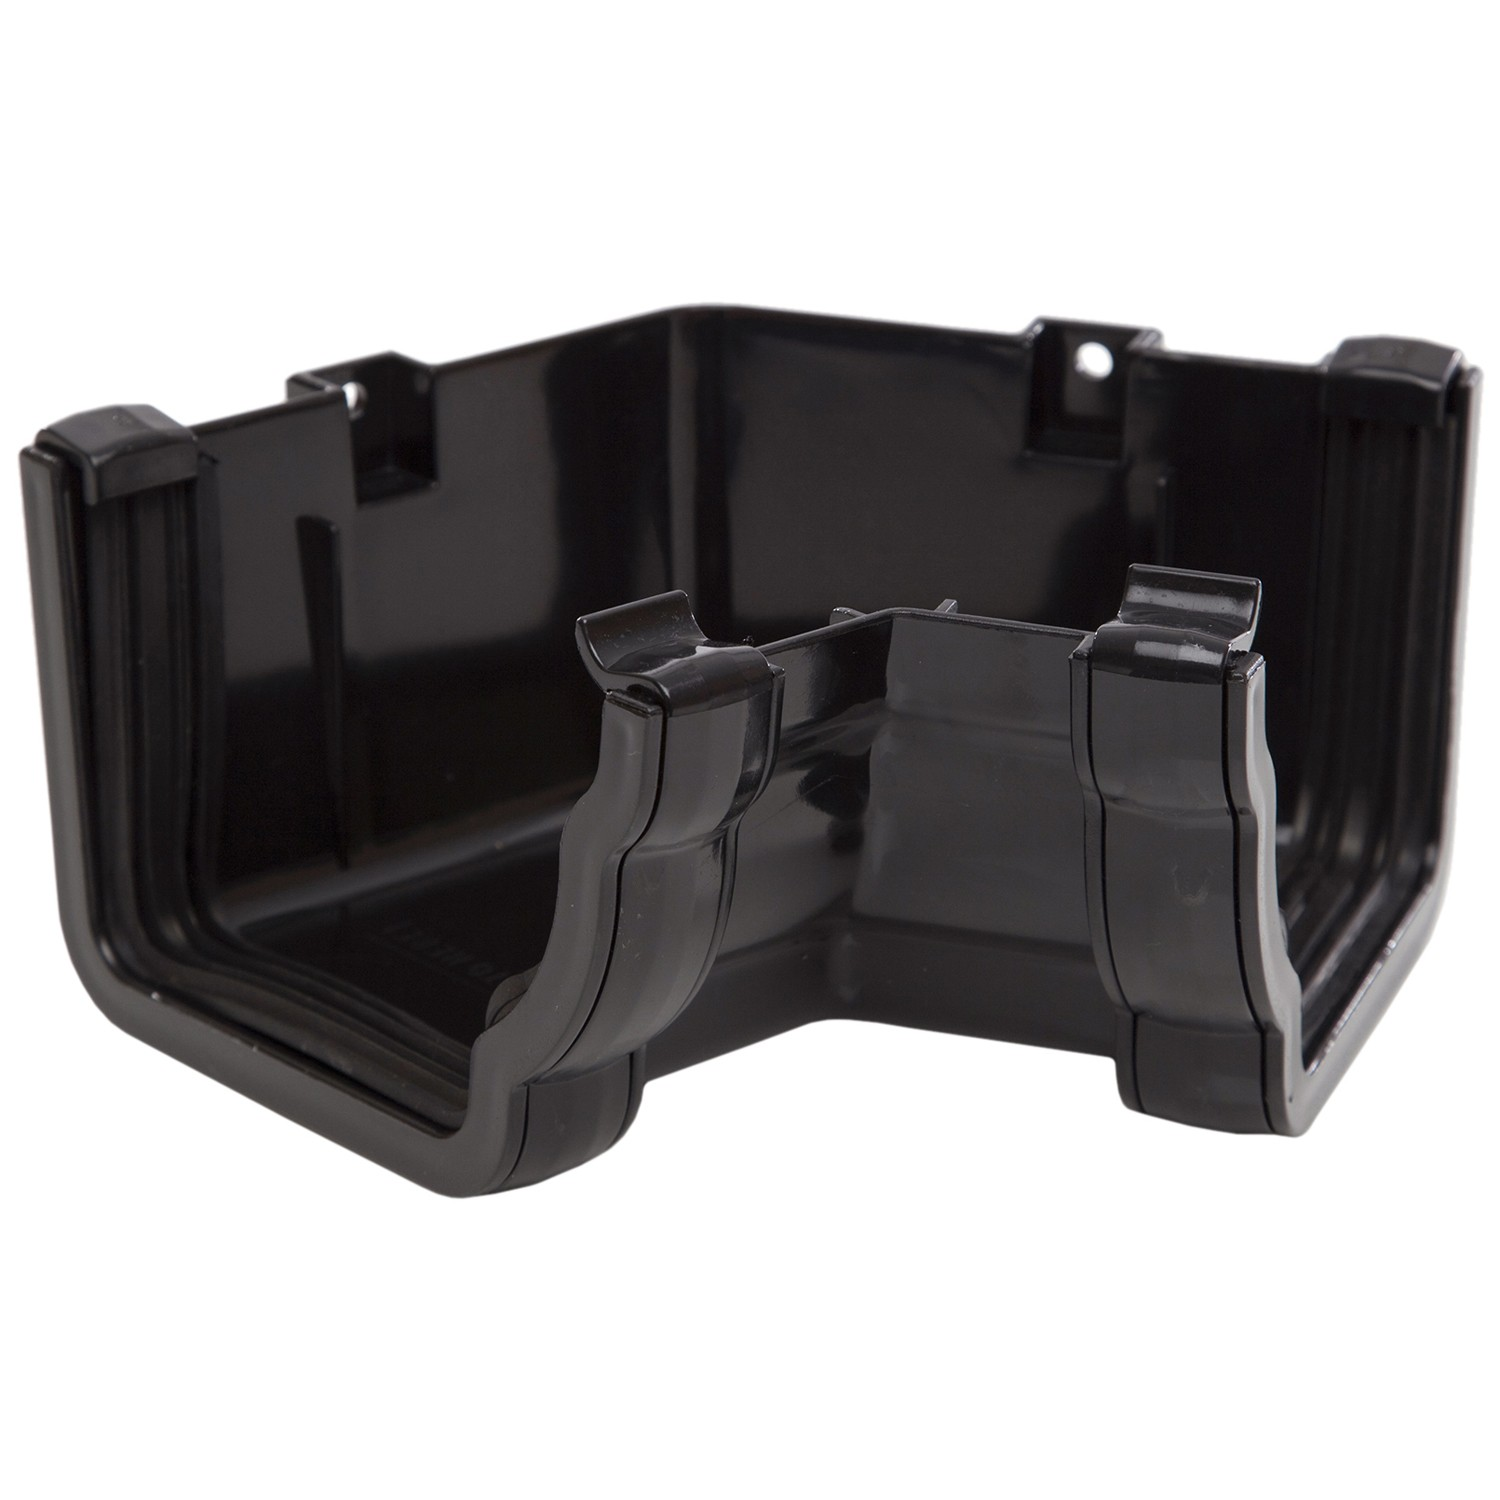 Polypipe 117mm Sovereign High Capacity Gutter 120 Degree Angle (Internal, Fabricated) - Black